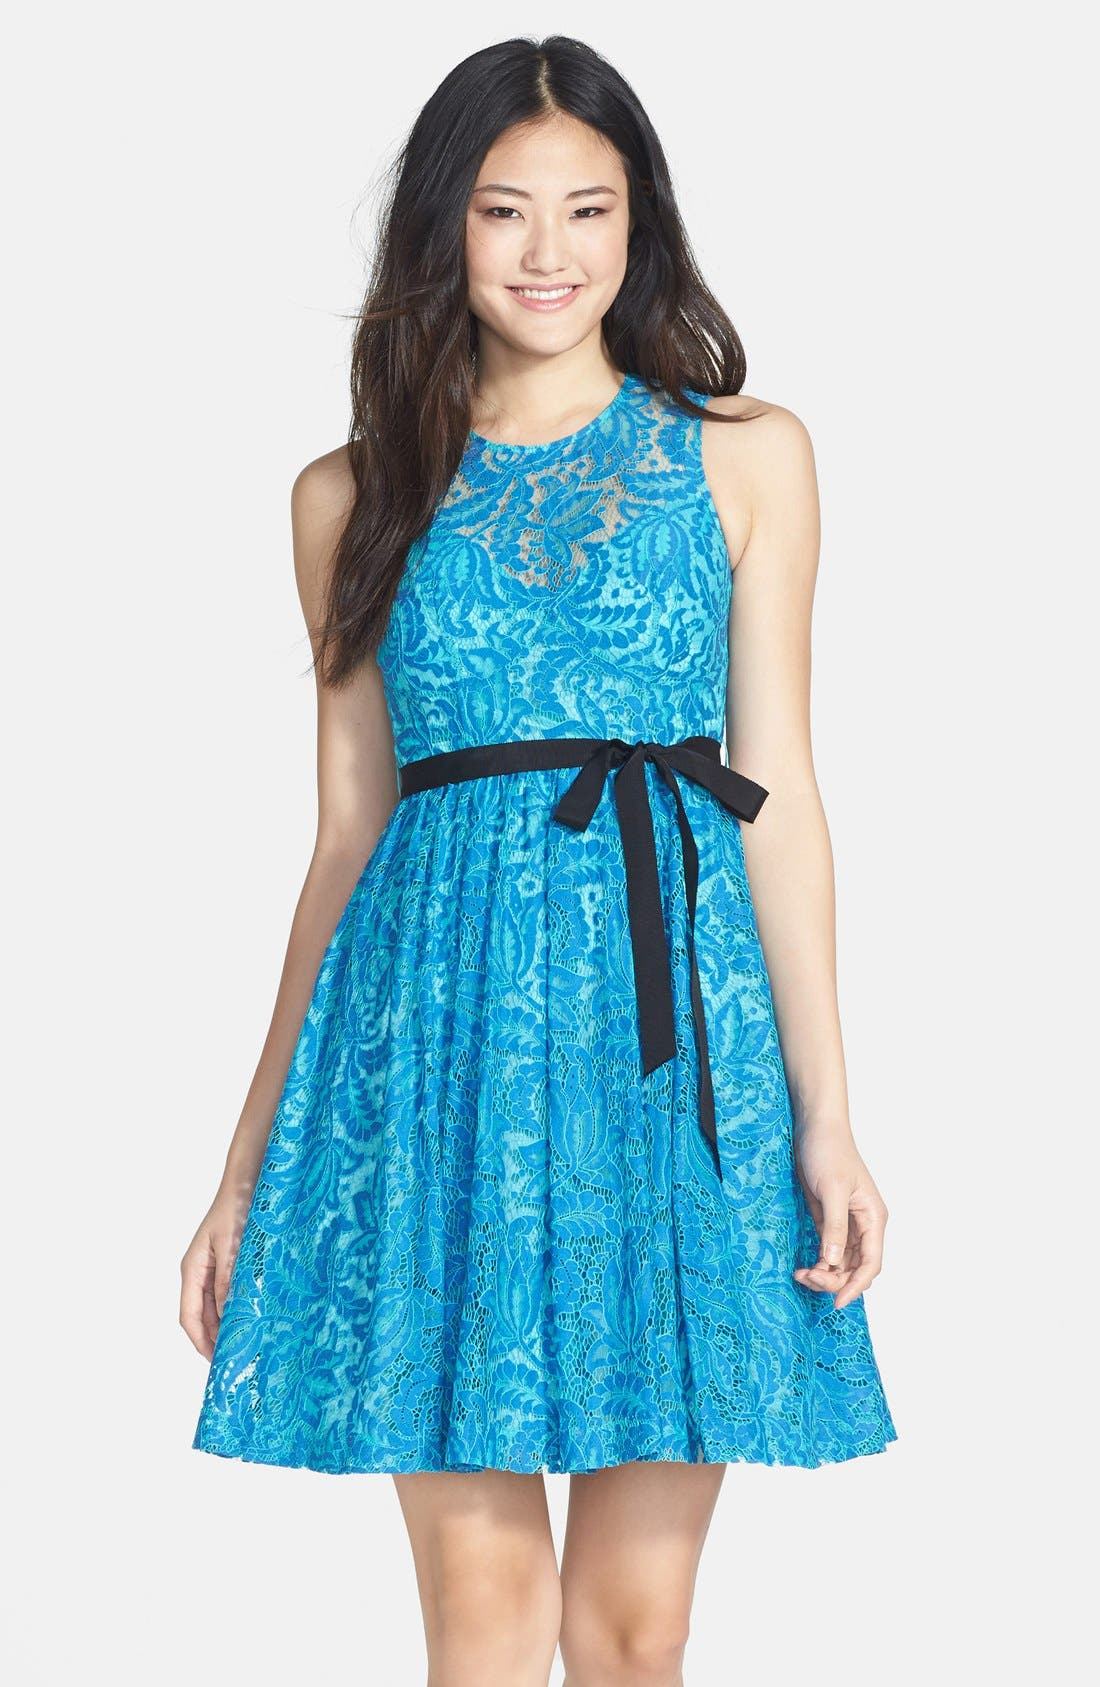 Main Image - Plenty by Tracy Reese 'Alana' Lace Fit & Flare Dress (Petite)